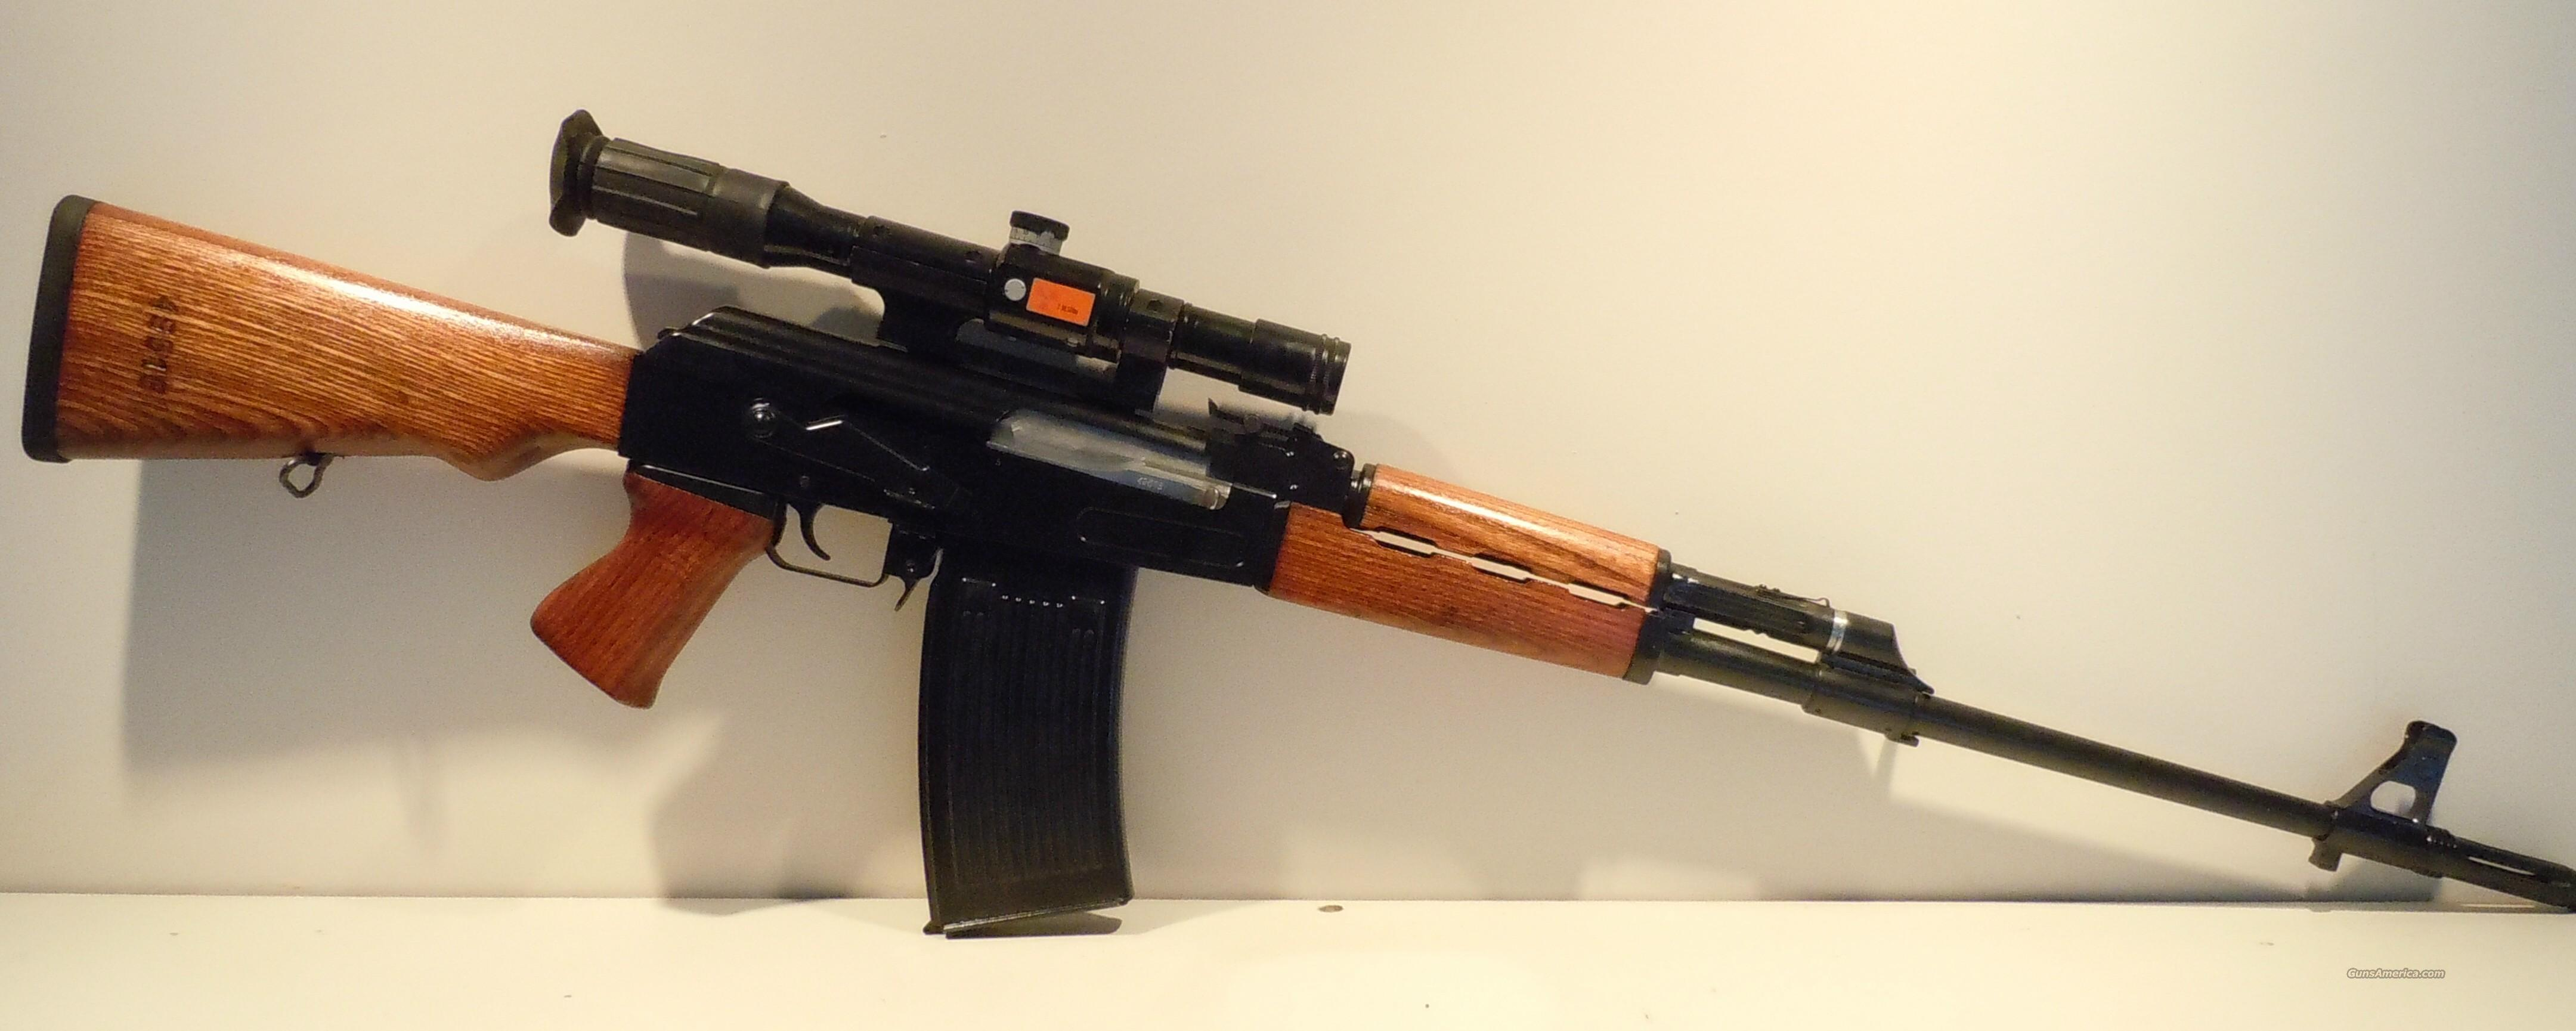 Yugo m76 sniper rifle 28 rnd mag included for sale 942545354